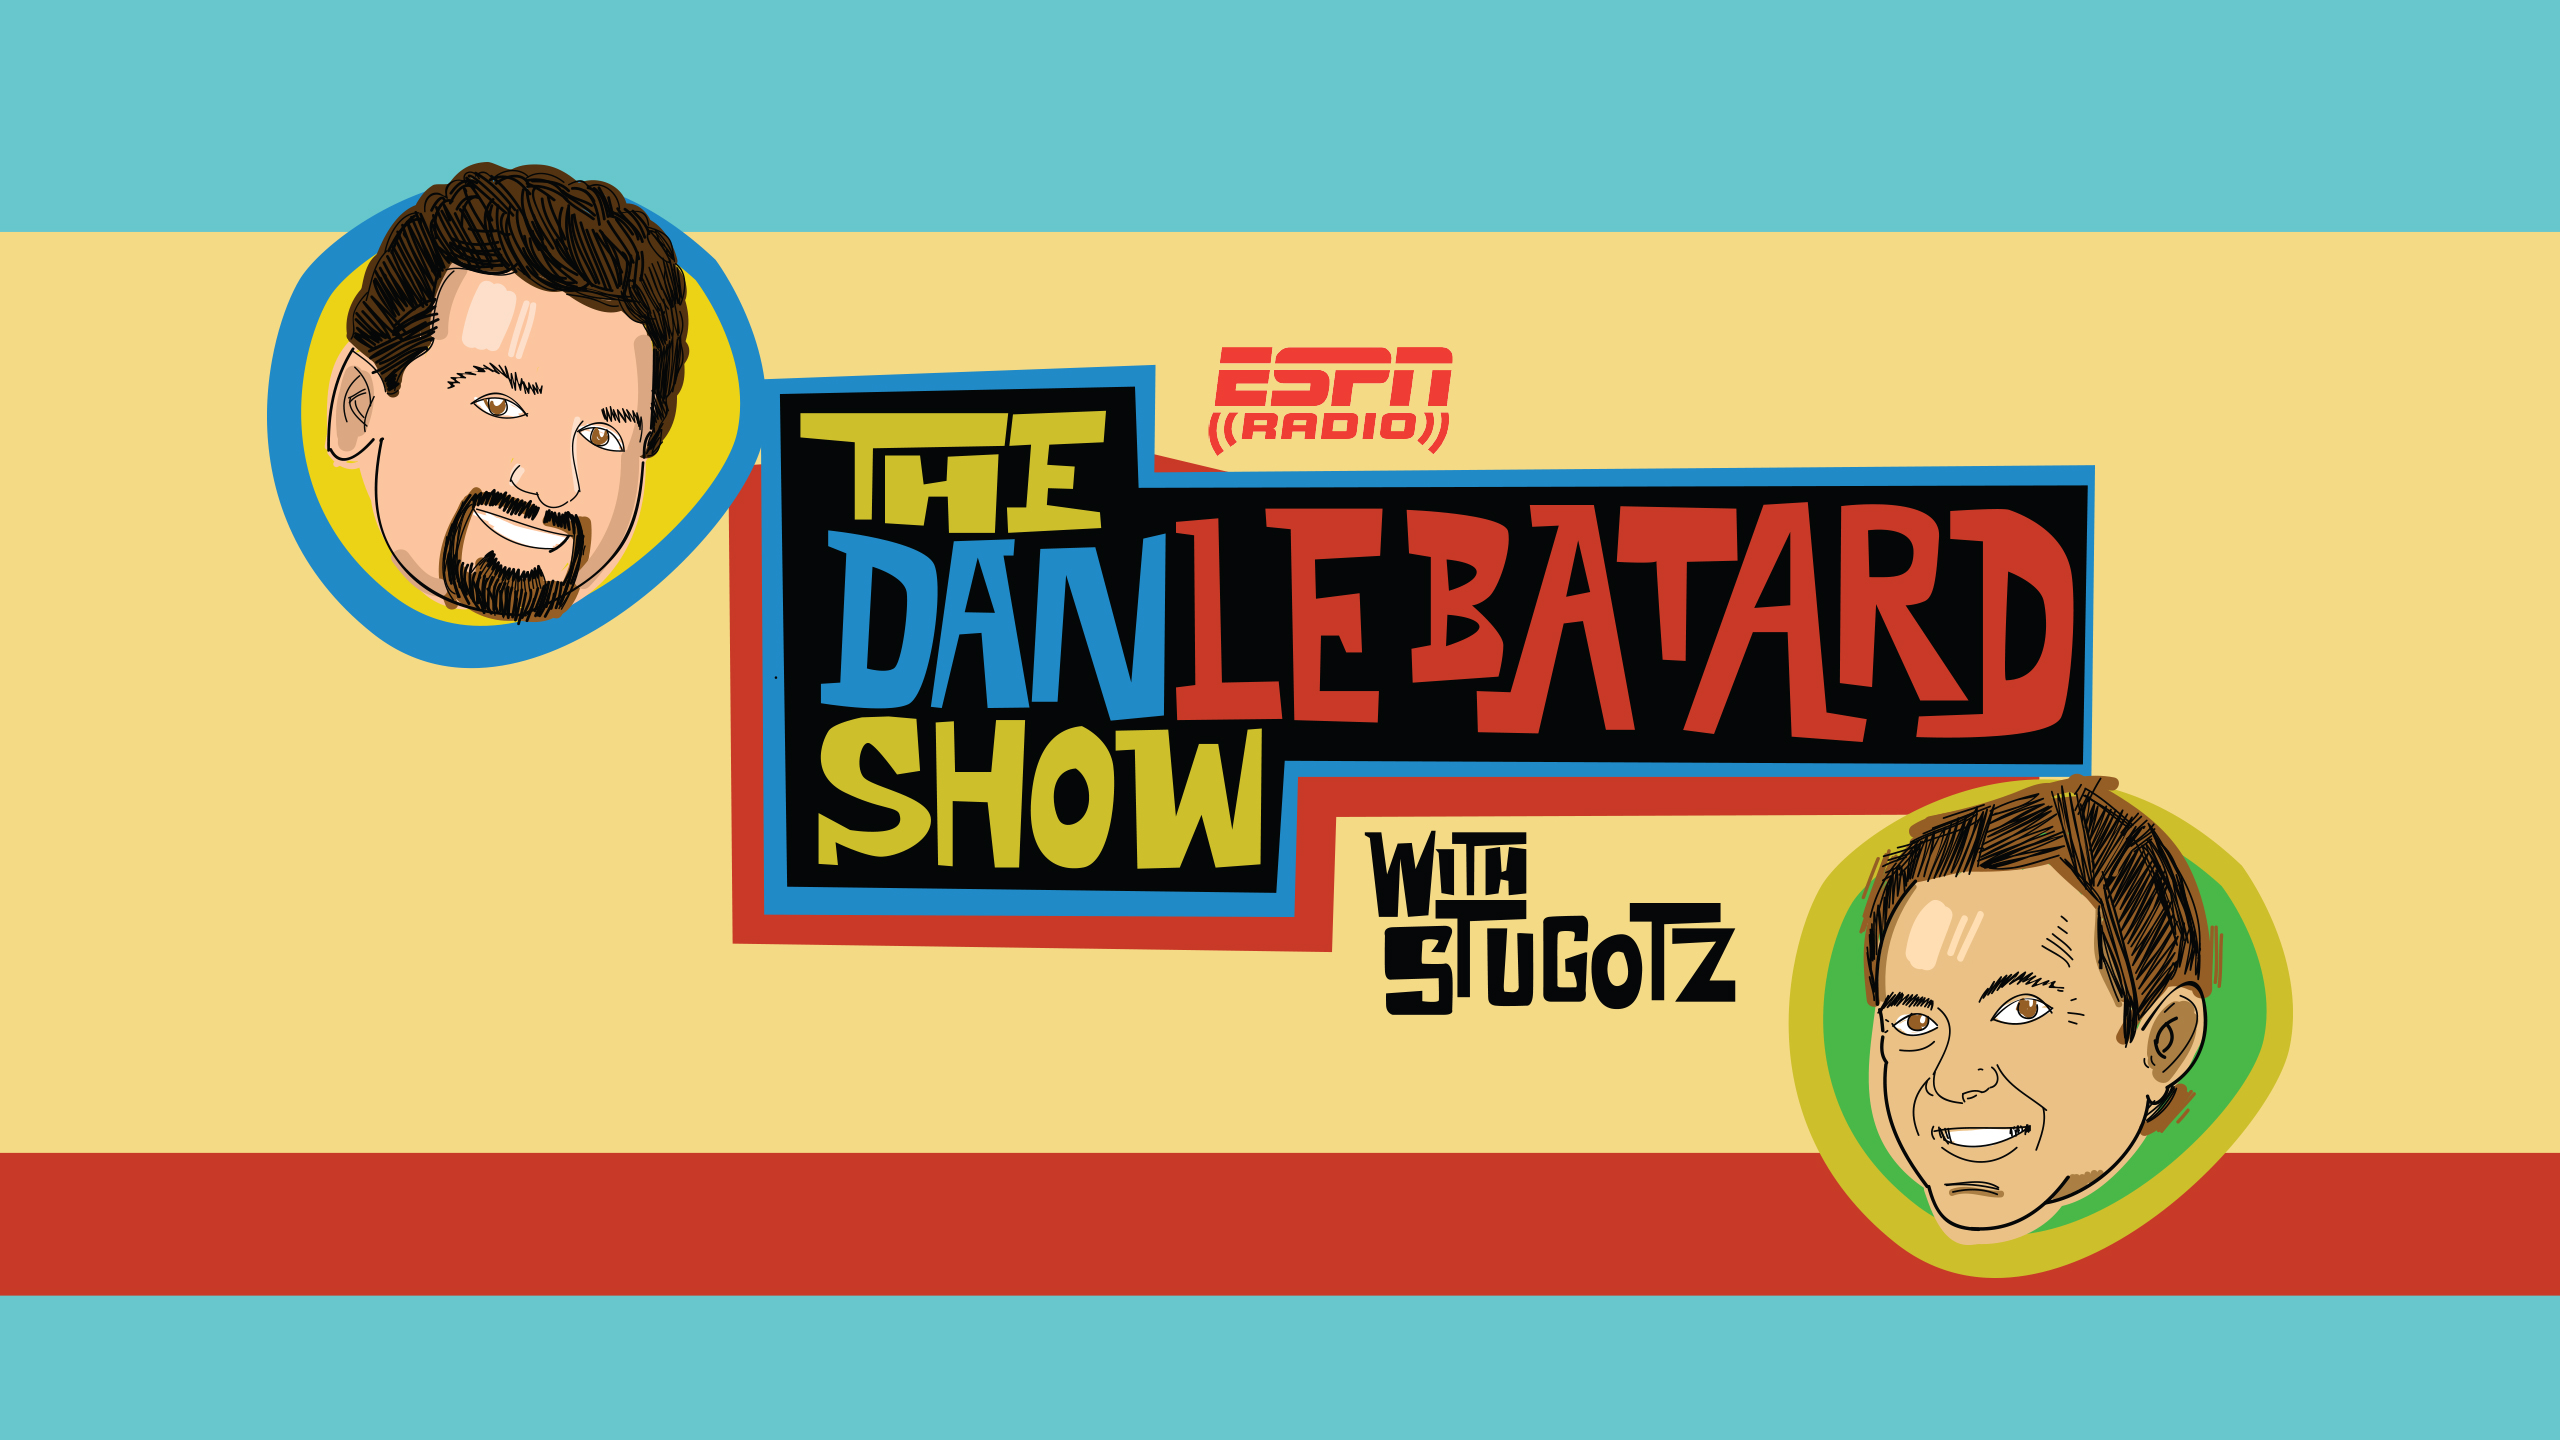 Tue, 10/16 - The Dan Le Batard Show with Stugotz Presented by Progressive